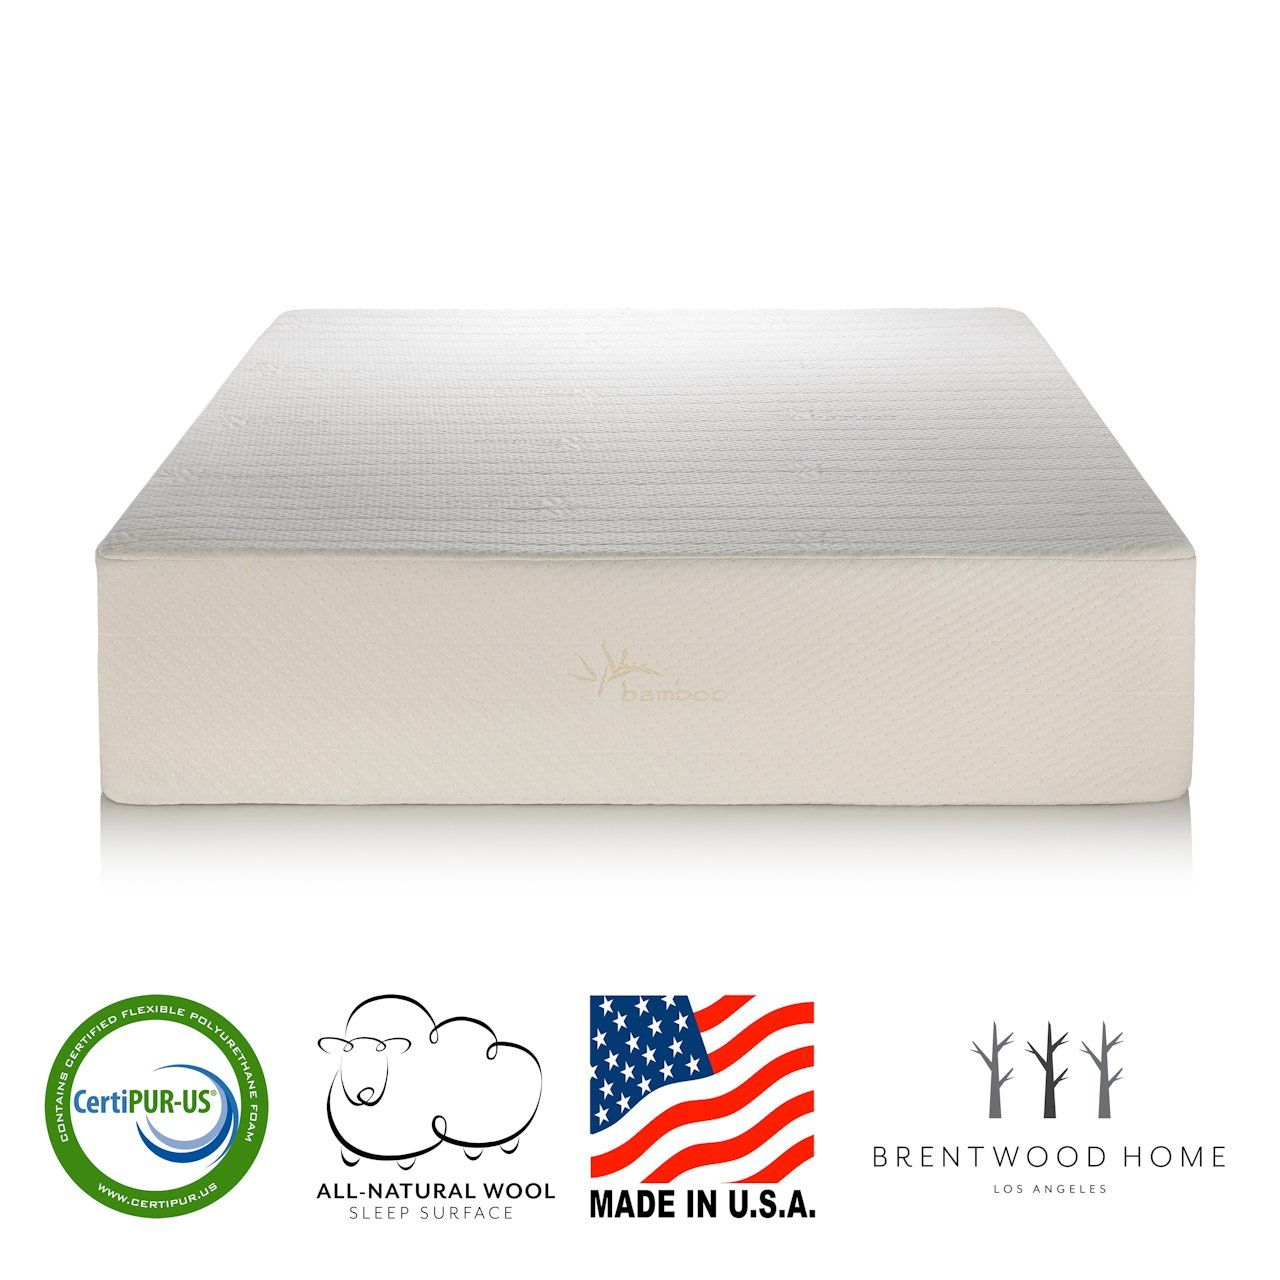 Brentwood Home Cypress Mattress Bamboo Derived Rayon Cover Gel Memory Foam Made In Usa 11inch Twin Memory Foam Mattress Foam Mattress Hybrid Mattress Reviews